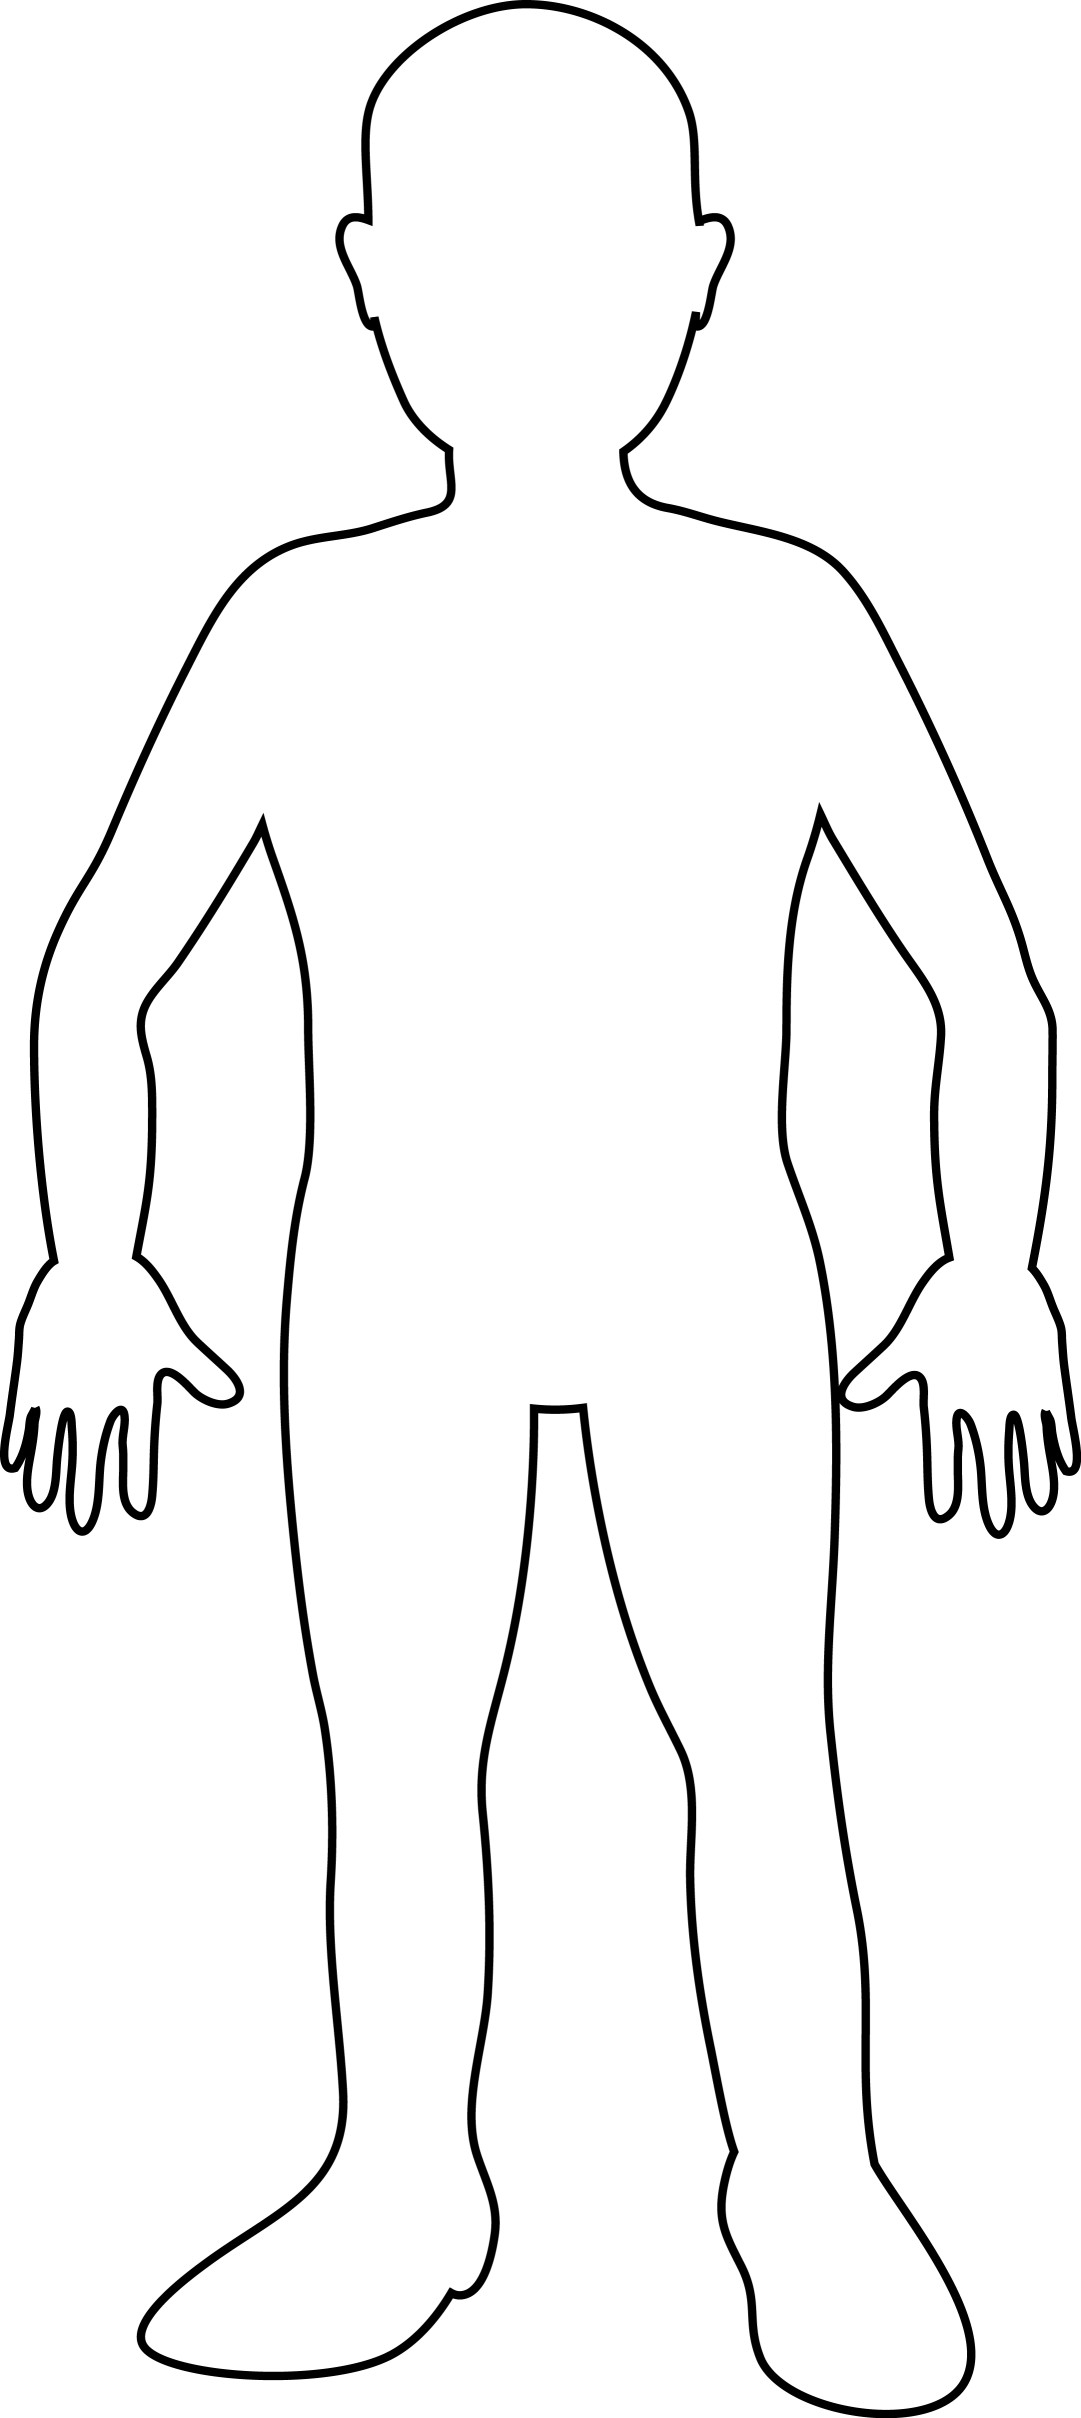 Shoulder clipart body outline Outlines outlines Pinterest body Cuerpo